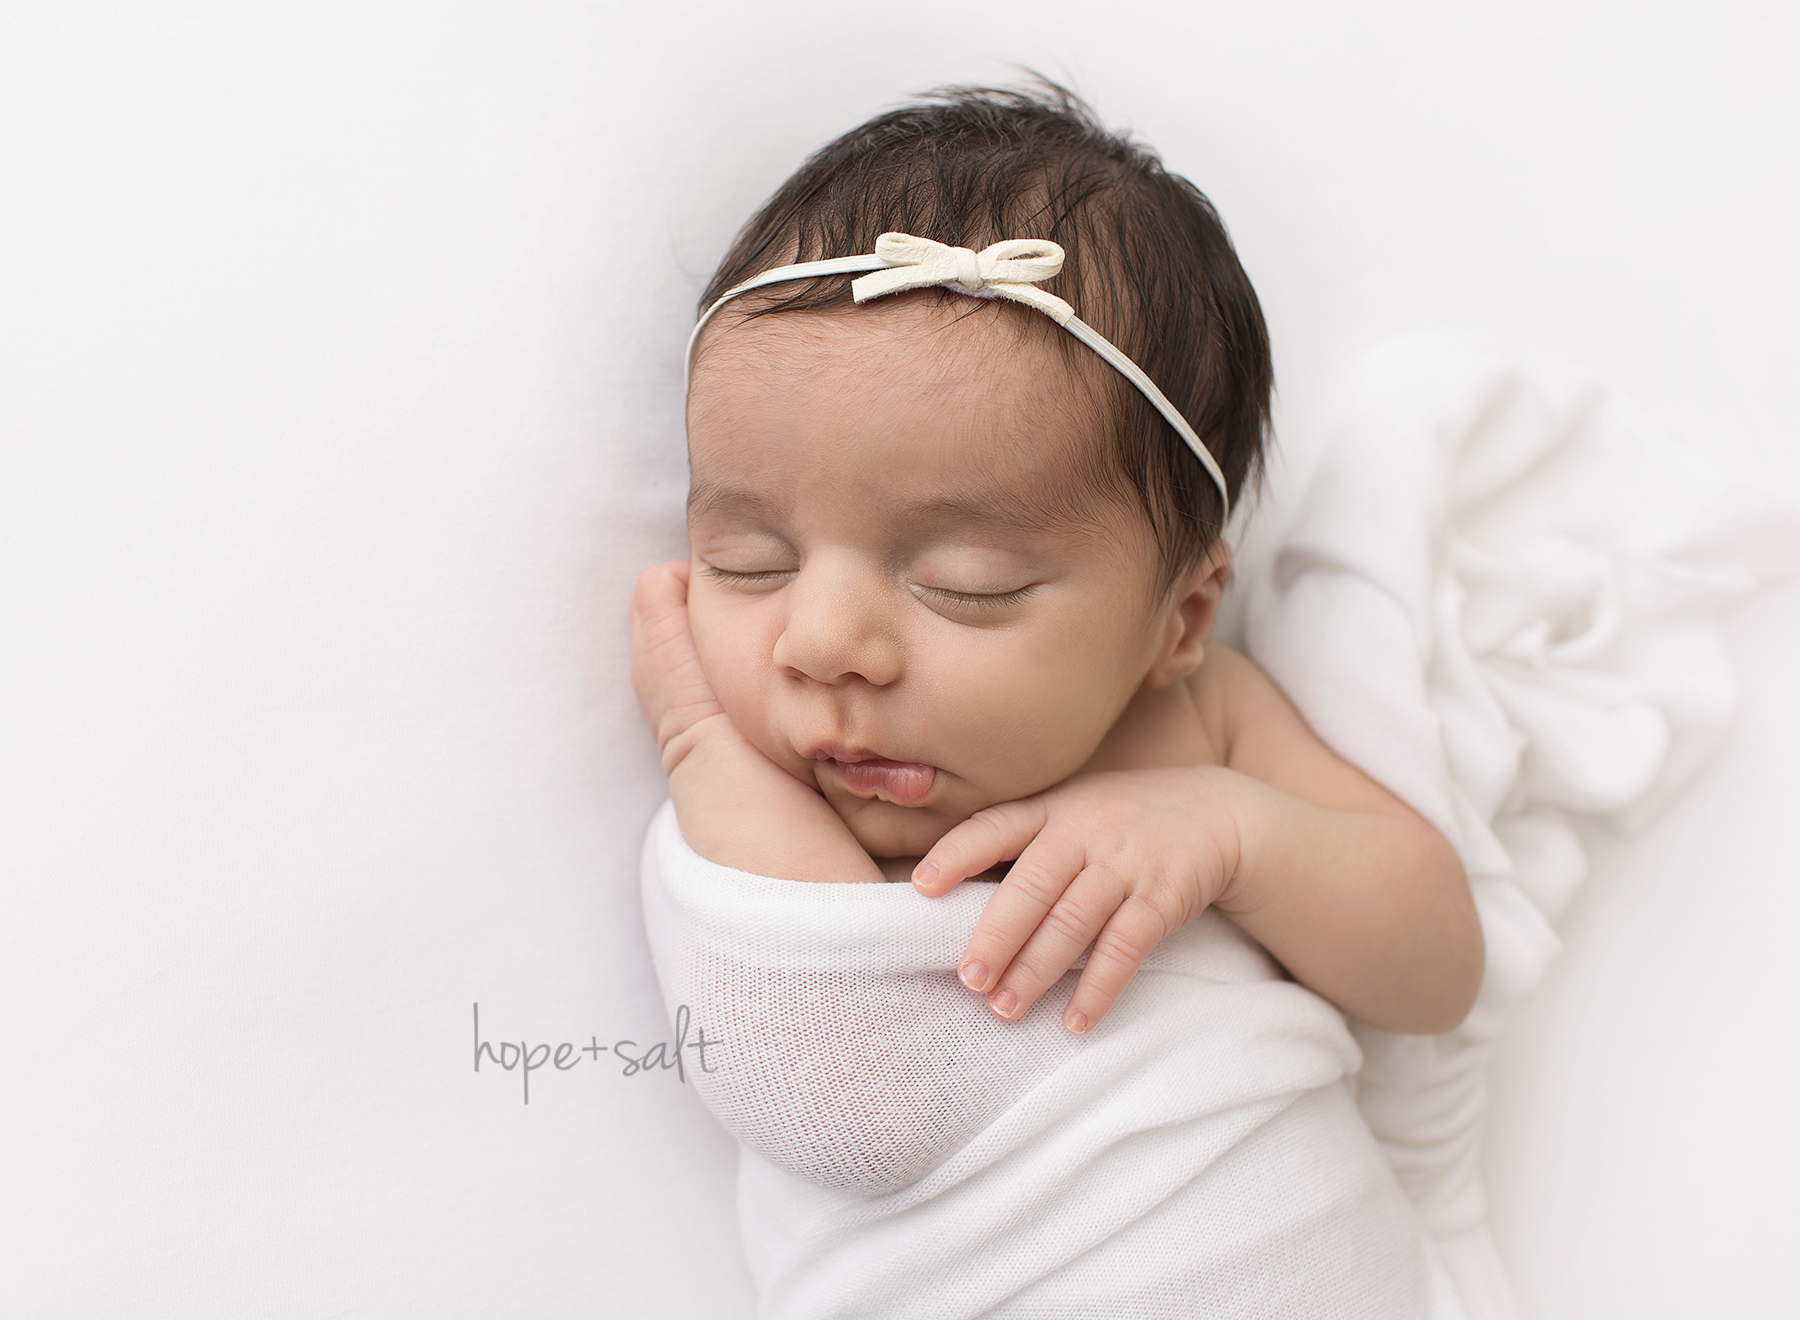 oakville newborn photographer - baby girl Natalia sweet and simple Burlington ontario studio session all natural poses